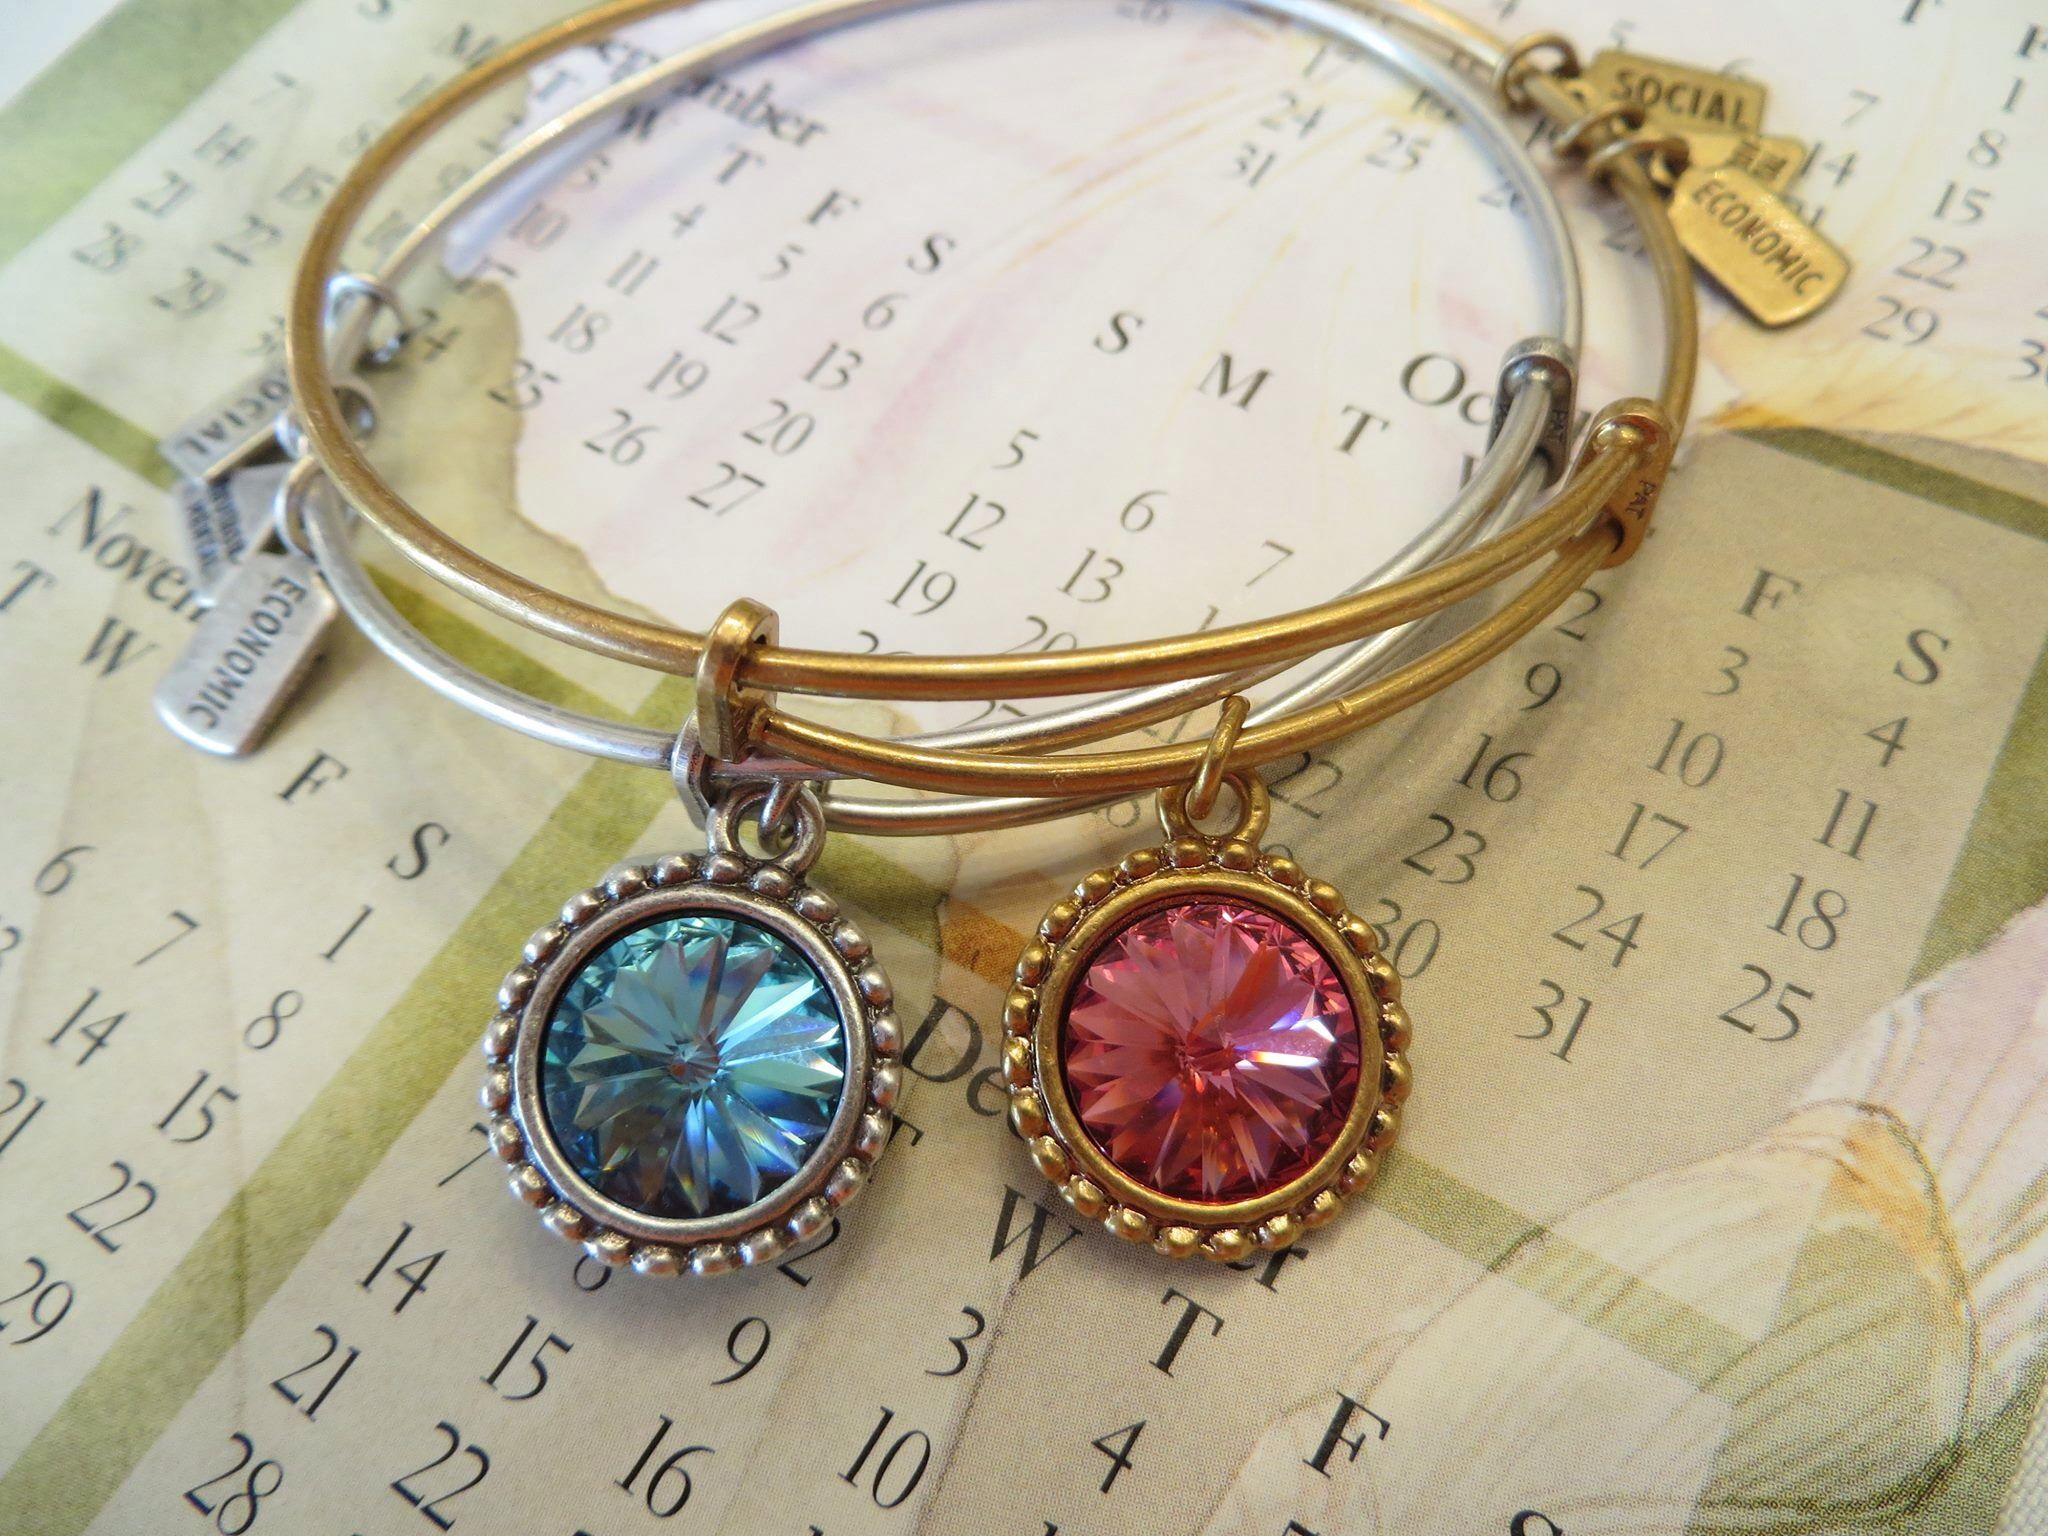 Wind Amp Fire Birthstone Bracelets I Need An August And